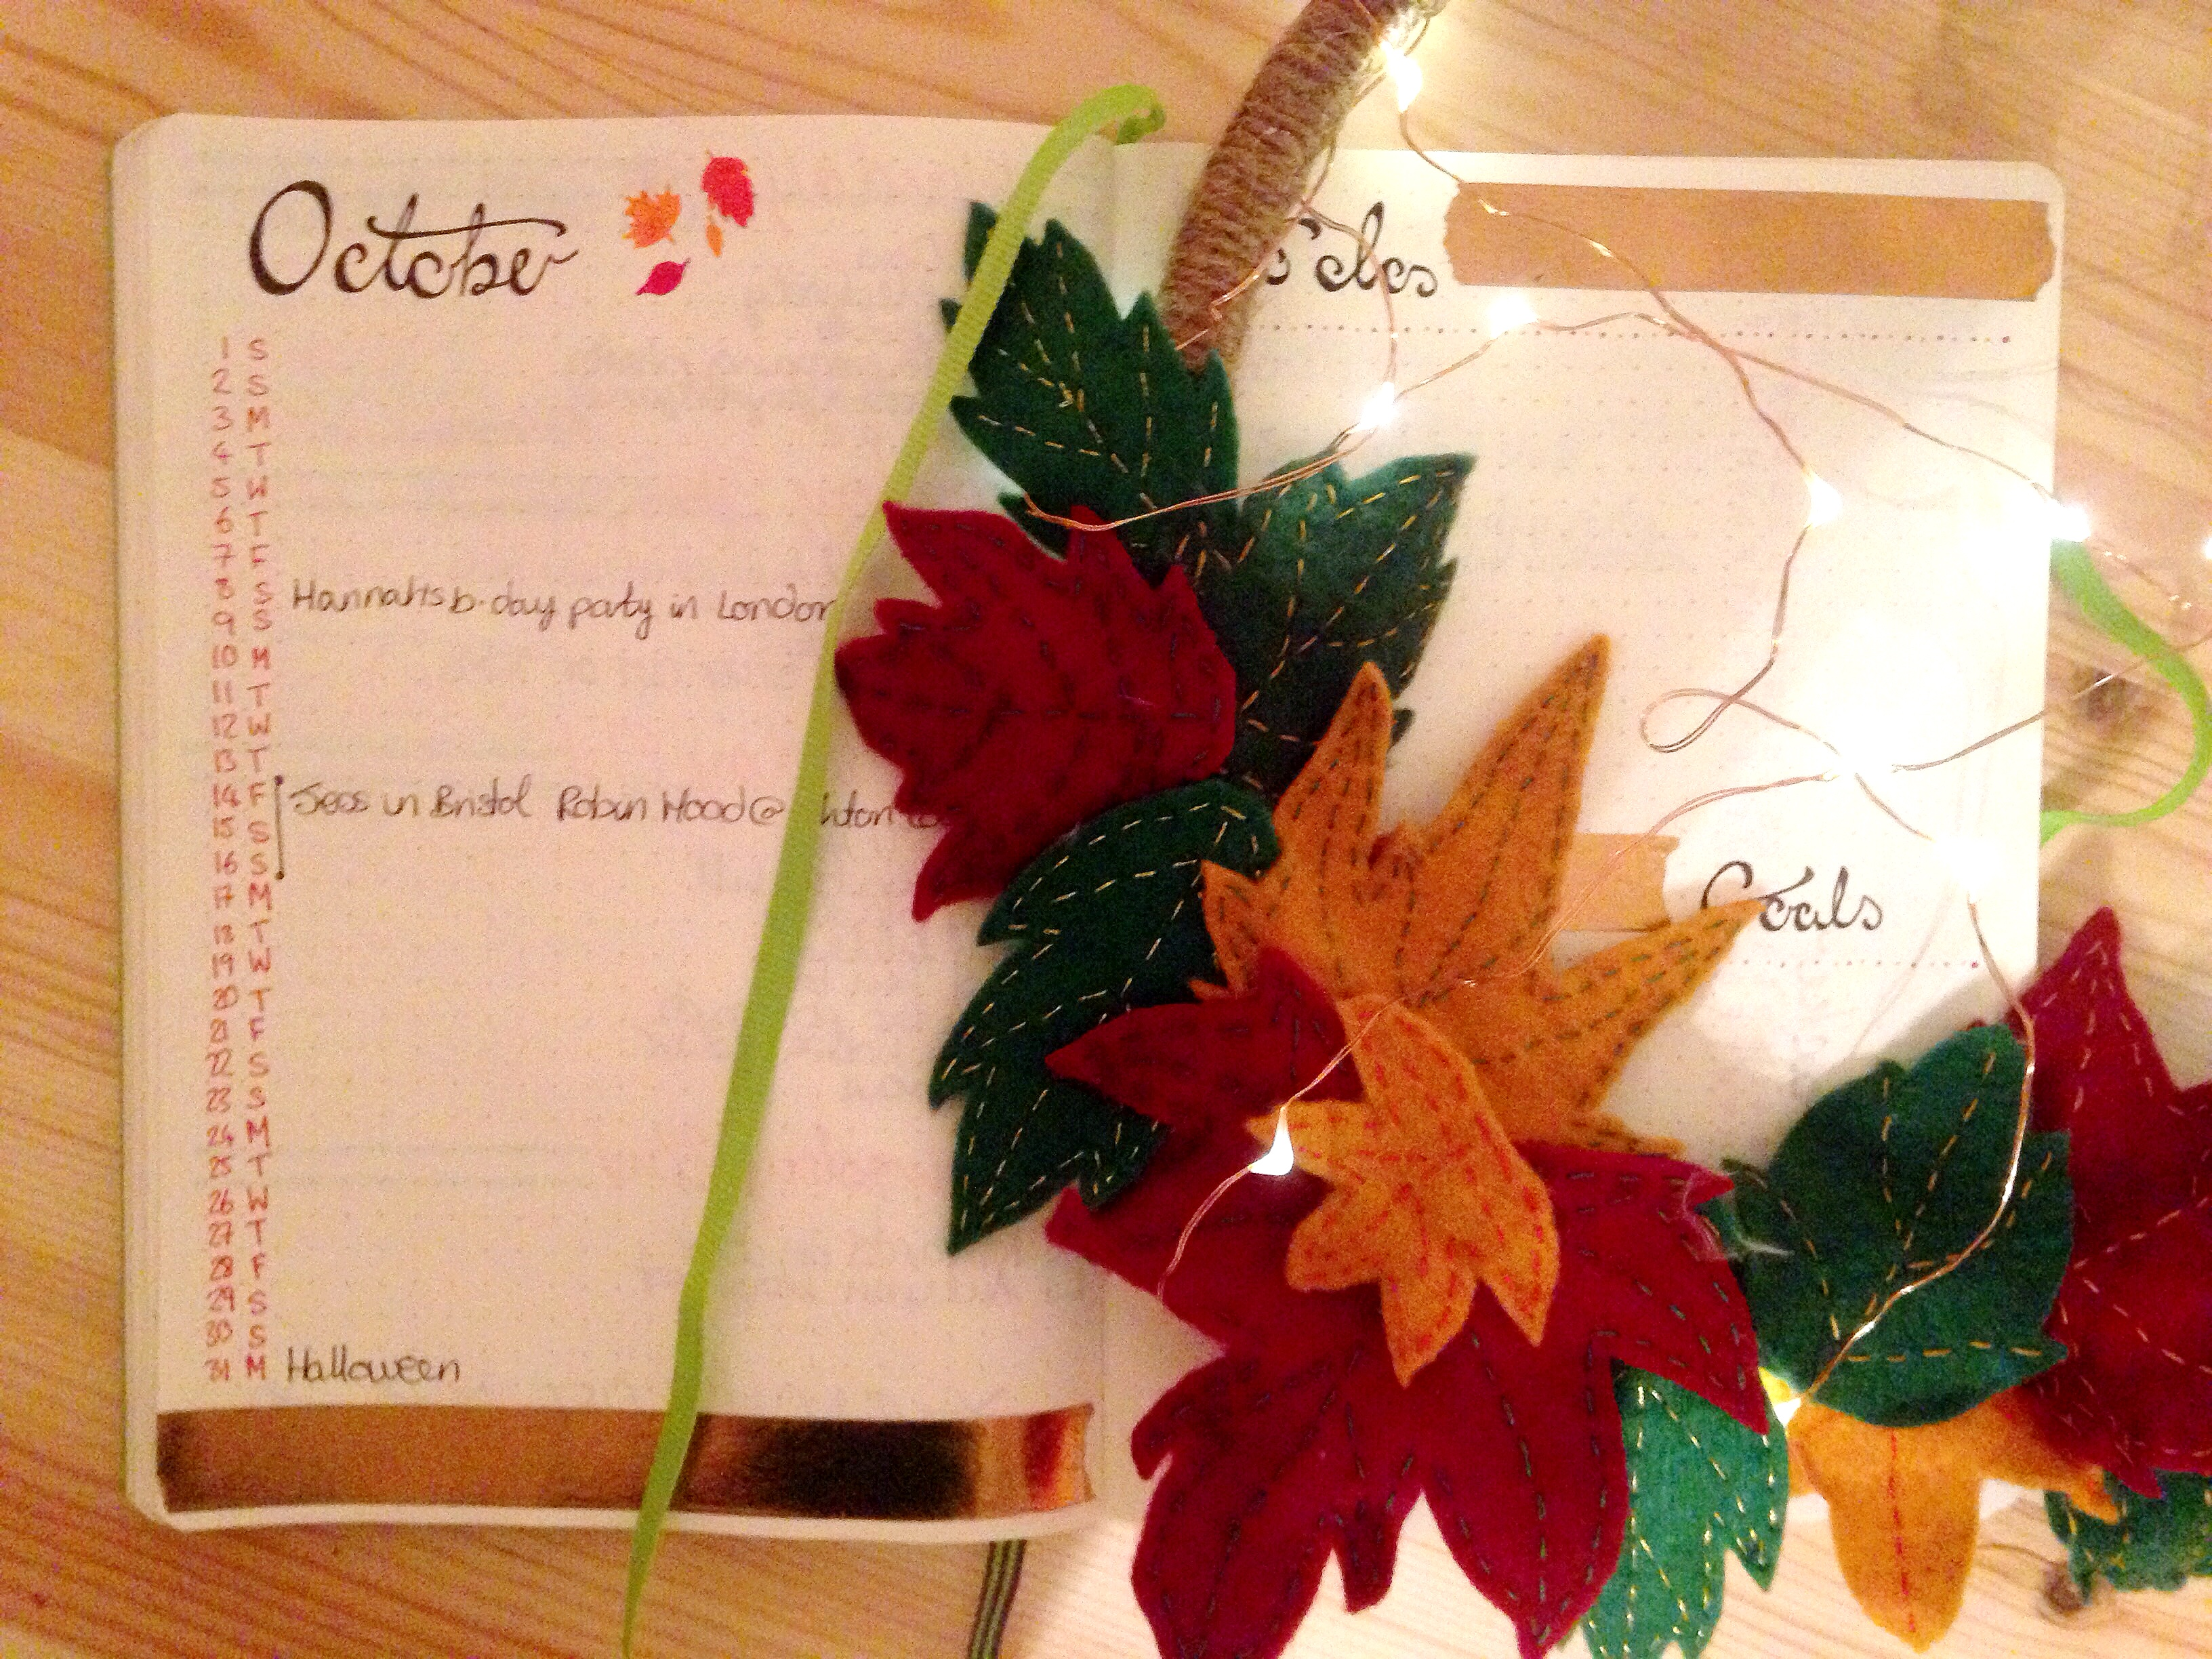 bullet journal autumn update. October's monthly calendar spread with autumnal leaf wreath and fairy lights